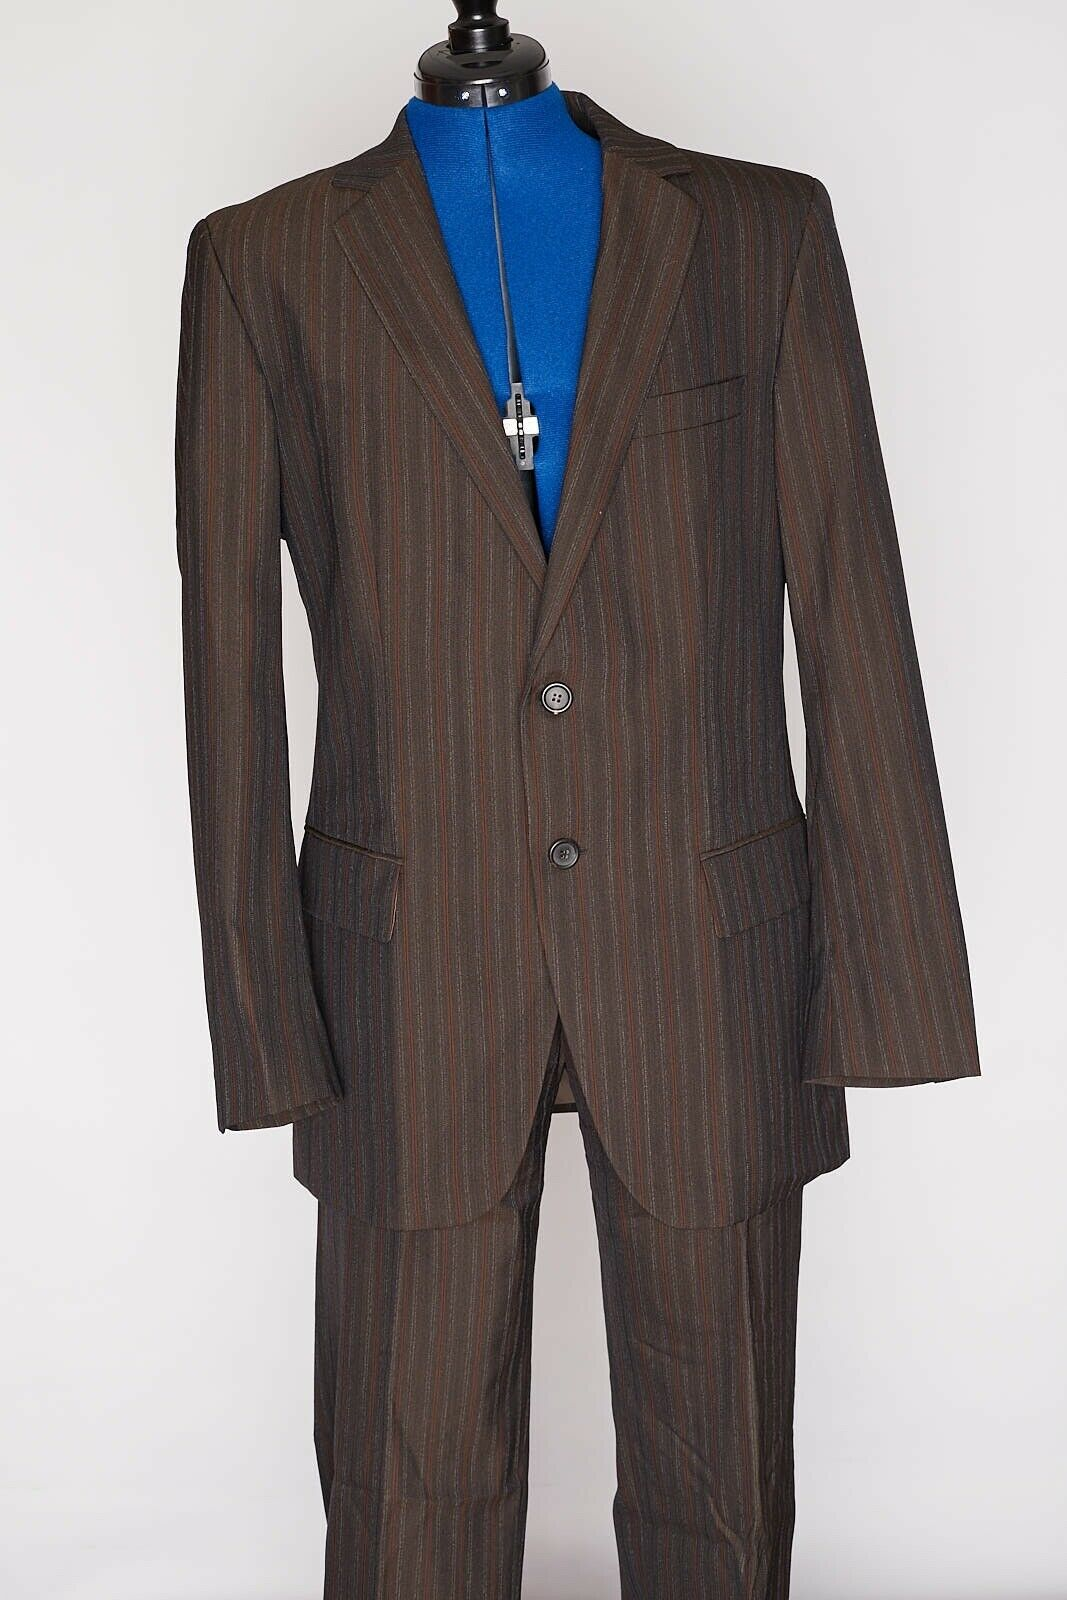 HUGO BOSS Suit rot Label Aamon  Hago 2 Piece braun Two Button Mens 38R 32 X 34